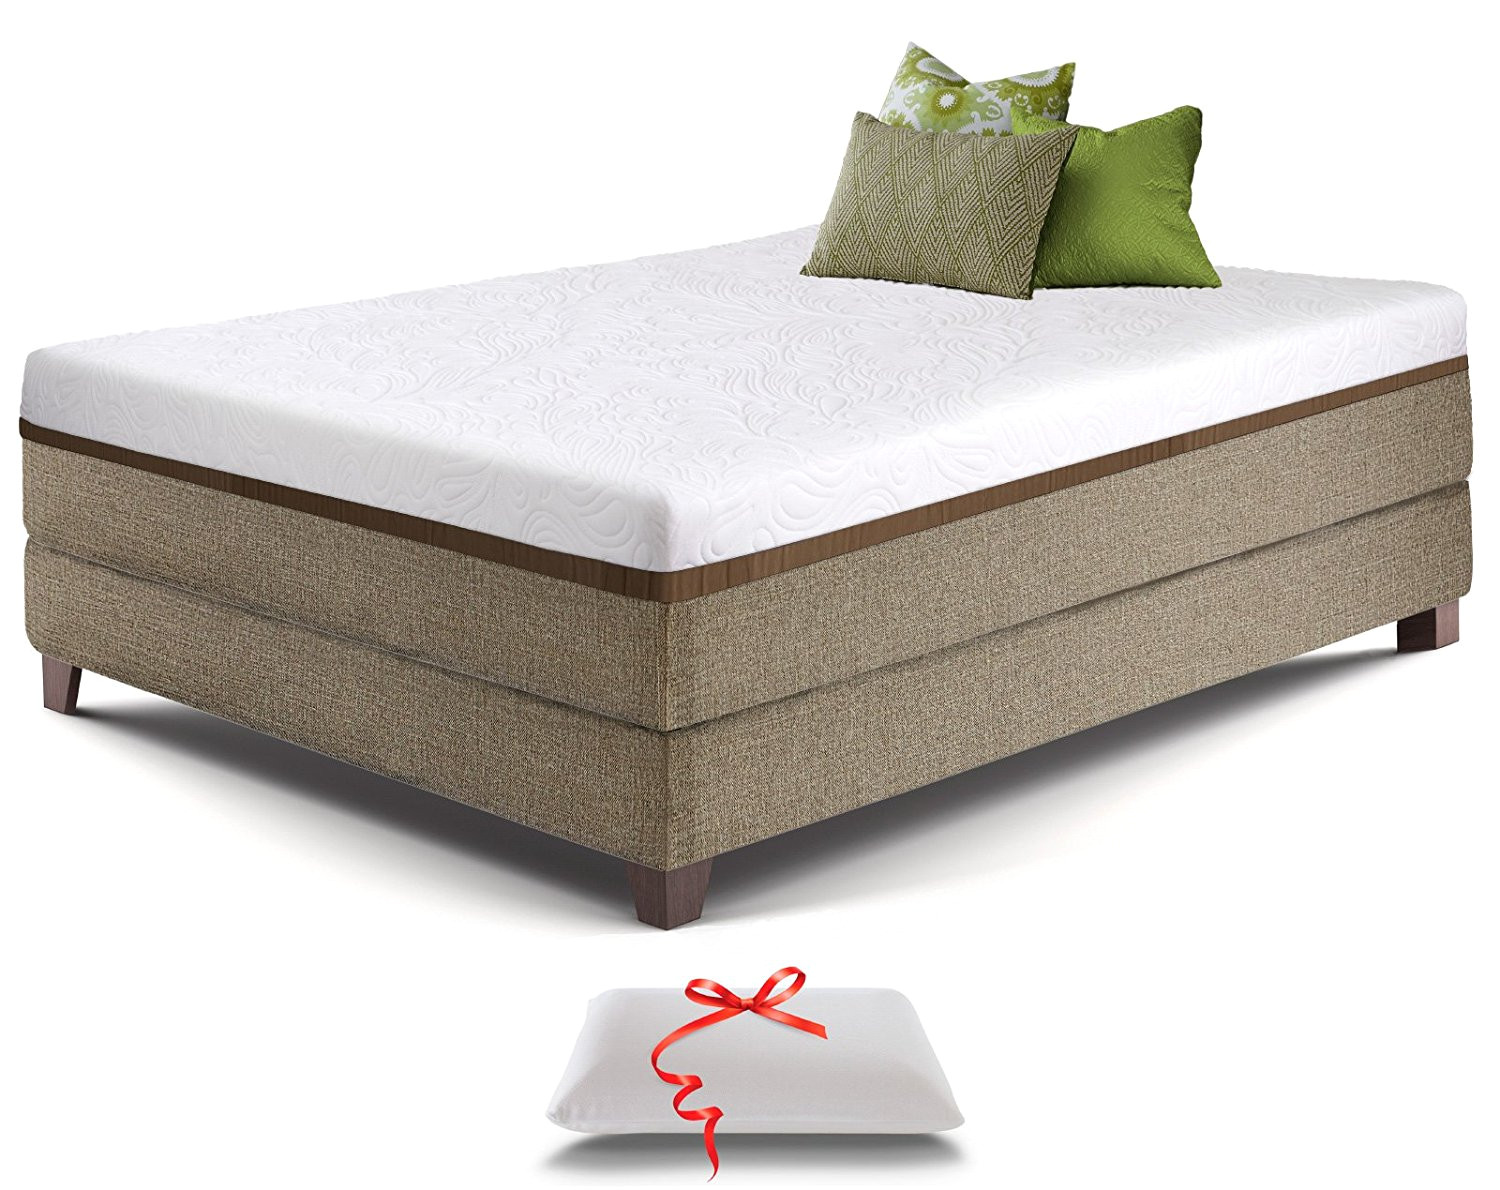 Eastern King Bed Vs Standard King Amazon Com Live Sleep Ultra King Mattress Gel Memory Foam